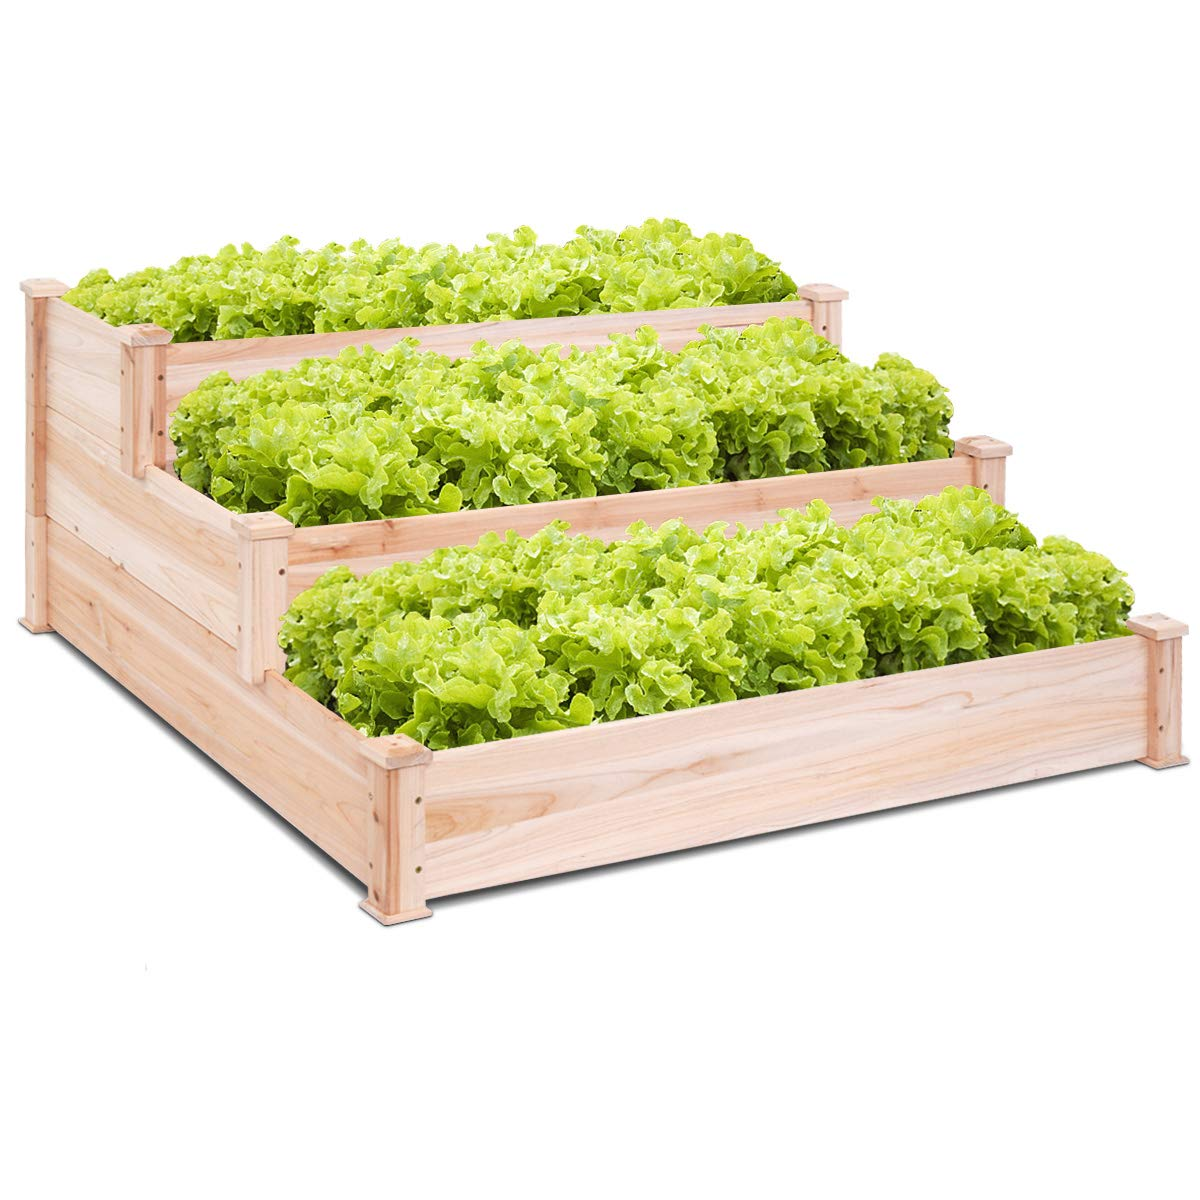 Giantex 3 Tier Wooden Elevated Raised Garden Bed Planter Kit Grow Gardening Vegetable Natural Cedar Wood, 49''X49''X22'' by Giantex